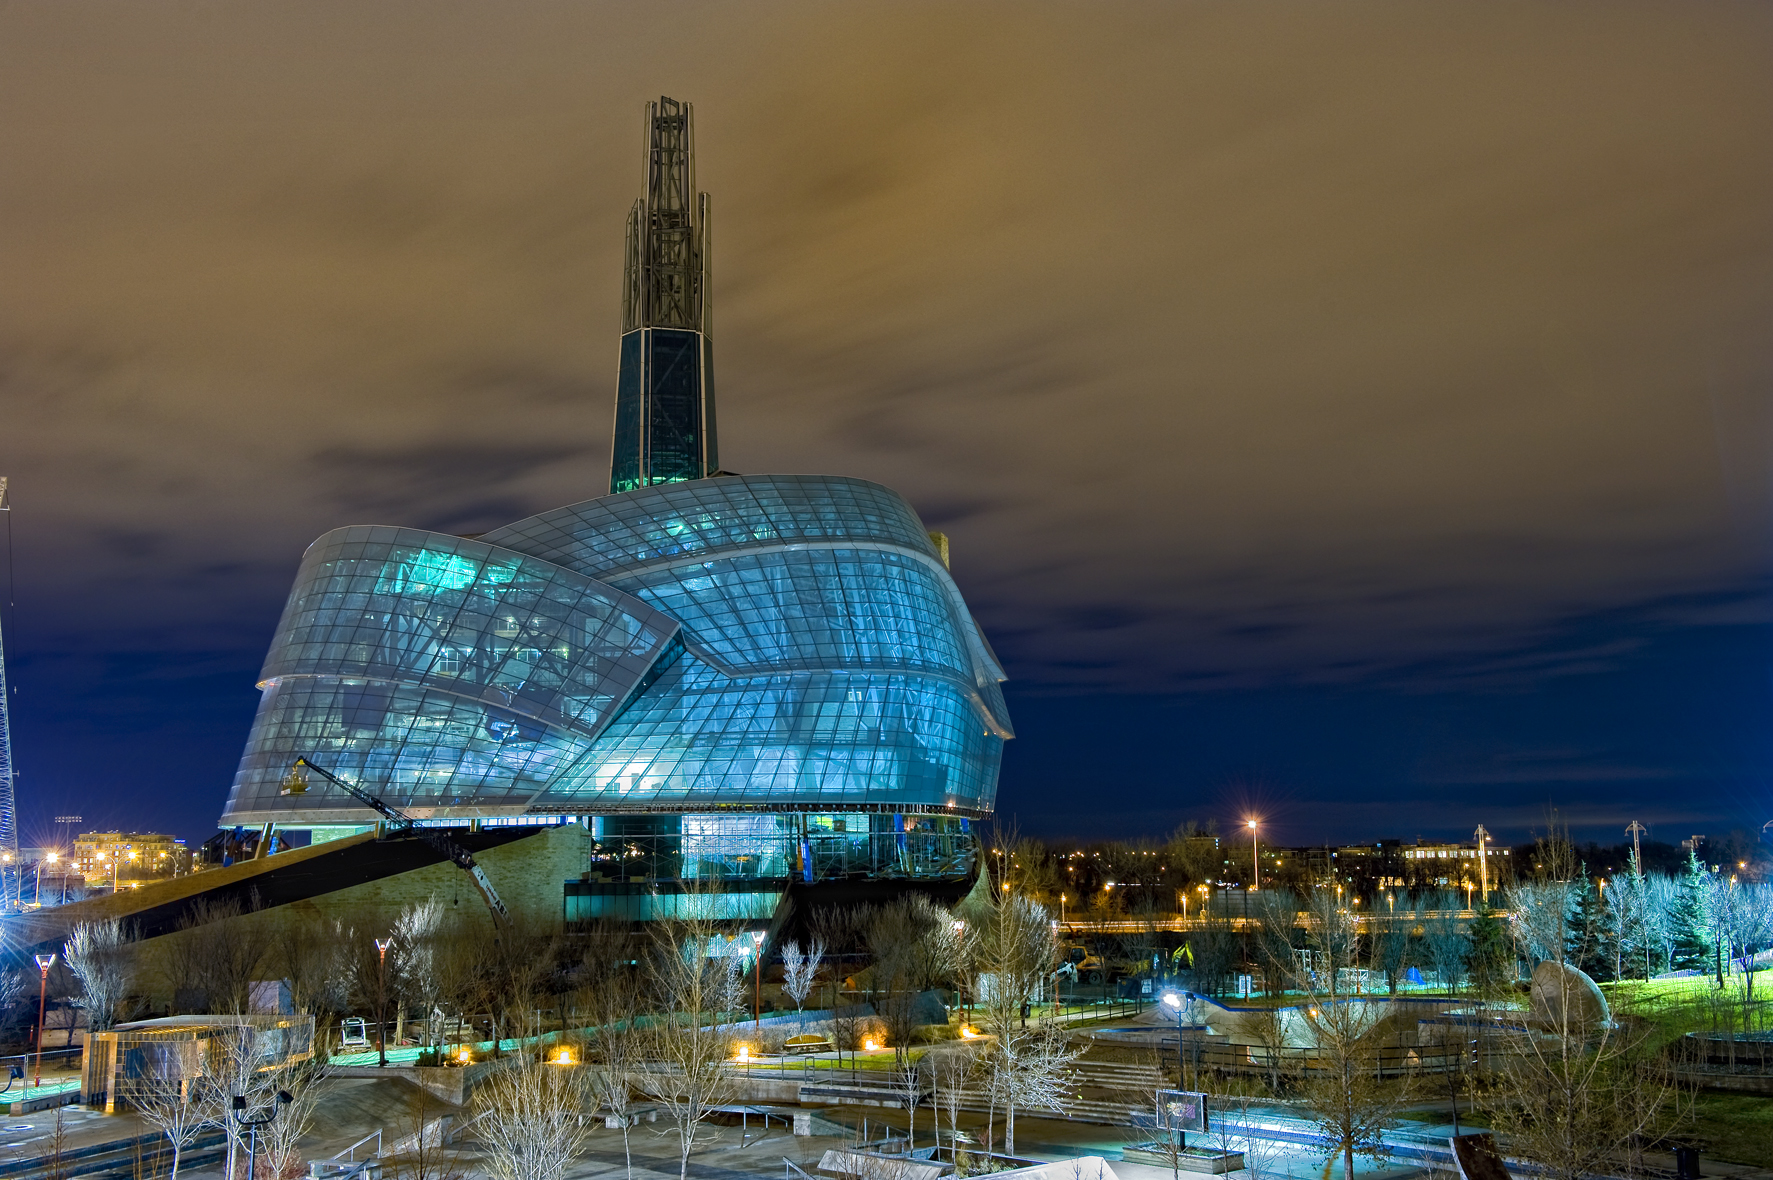 Canadian Museum of Human Rights - fabulous eyecatching building designed by the architect Antoine Predock